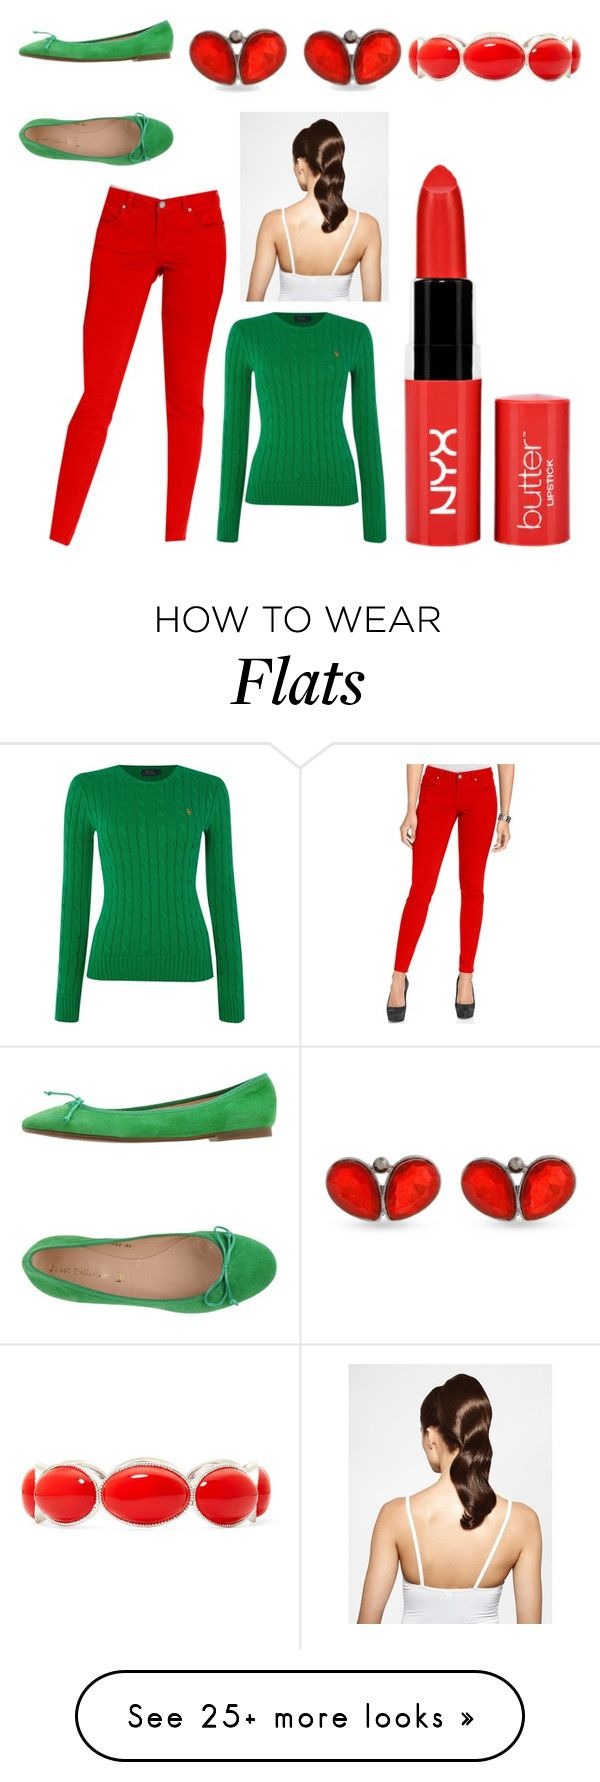 """""""Untitled #1366"""" by michelle-burns-steed on Polyvore featuring Style & Co., Polo Ralph Lauren, SWEET BALLERINA, Erica Lyons, Liz Claiborne and Hershesons"""